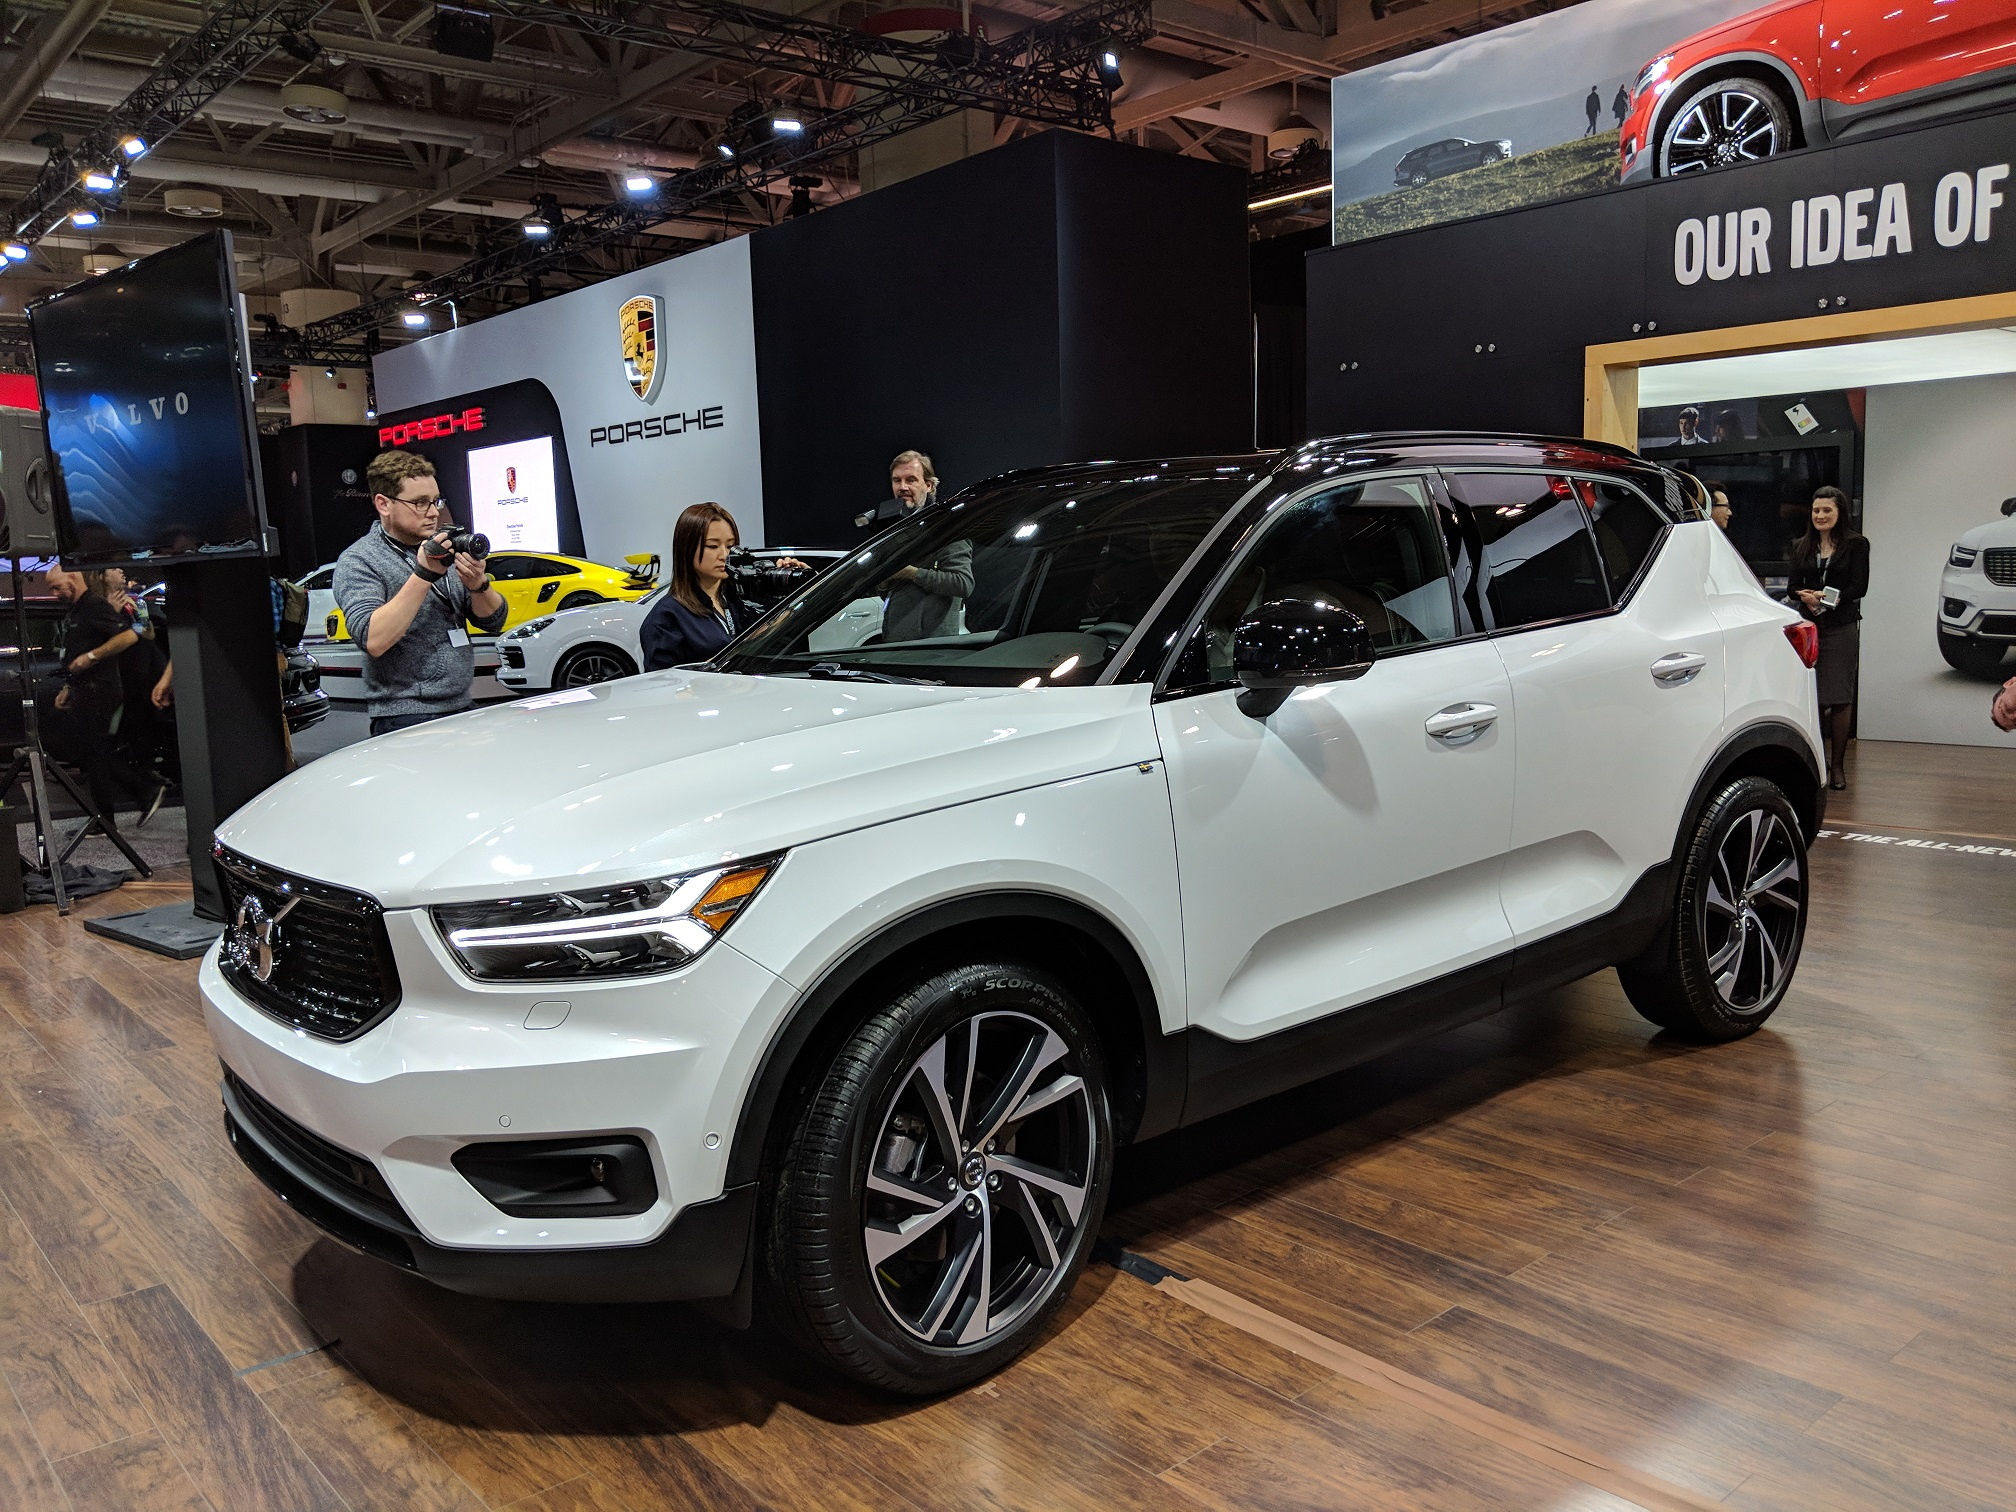 Volvo Debuts The XC RDesign At CIAS TheCanadianTechie - Winters car show